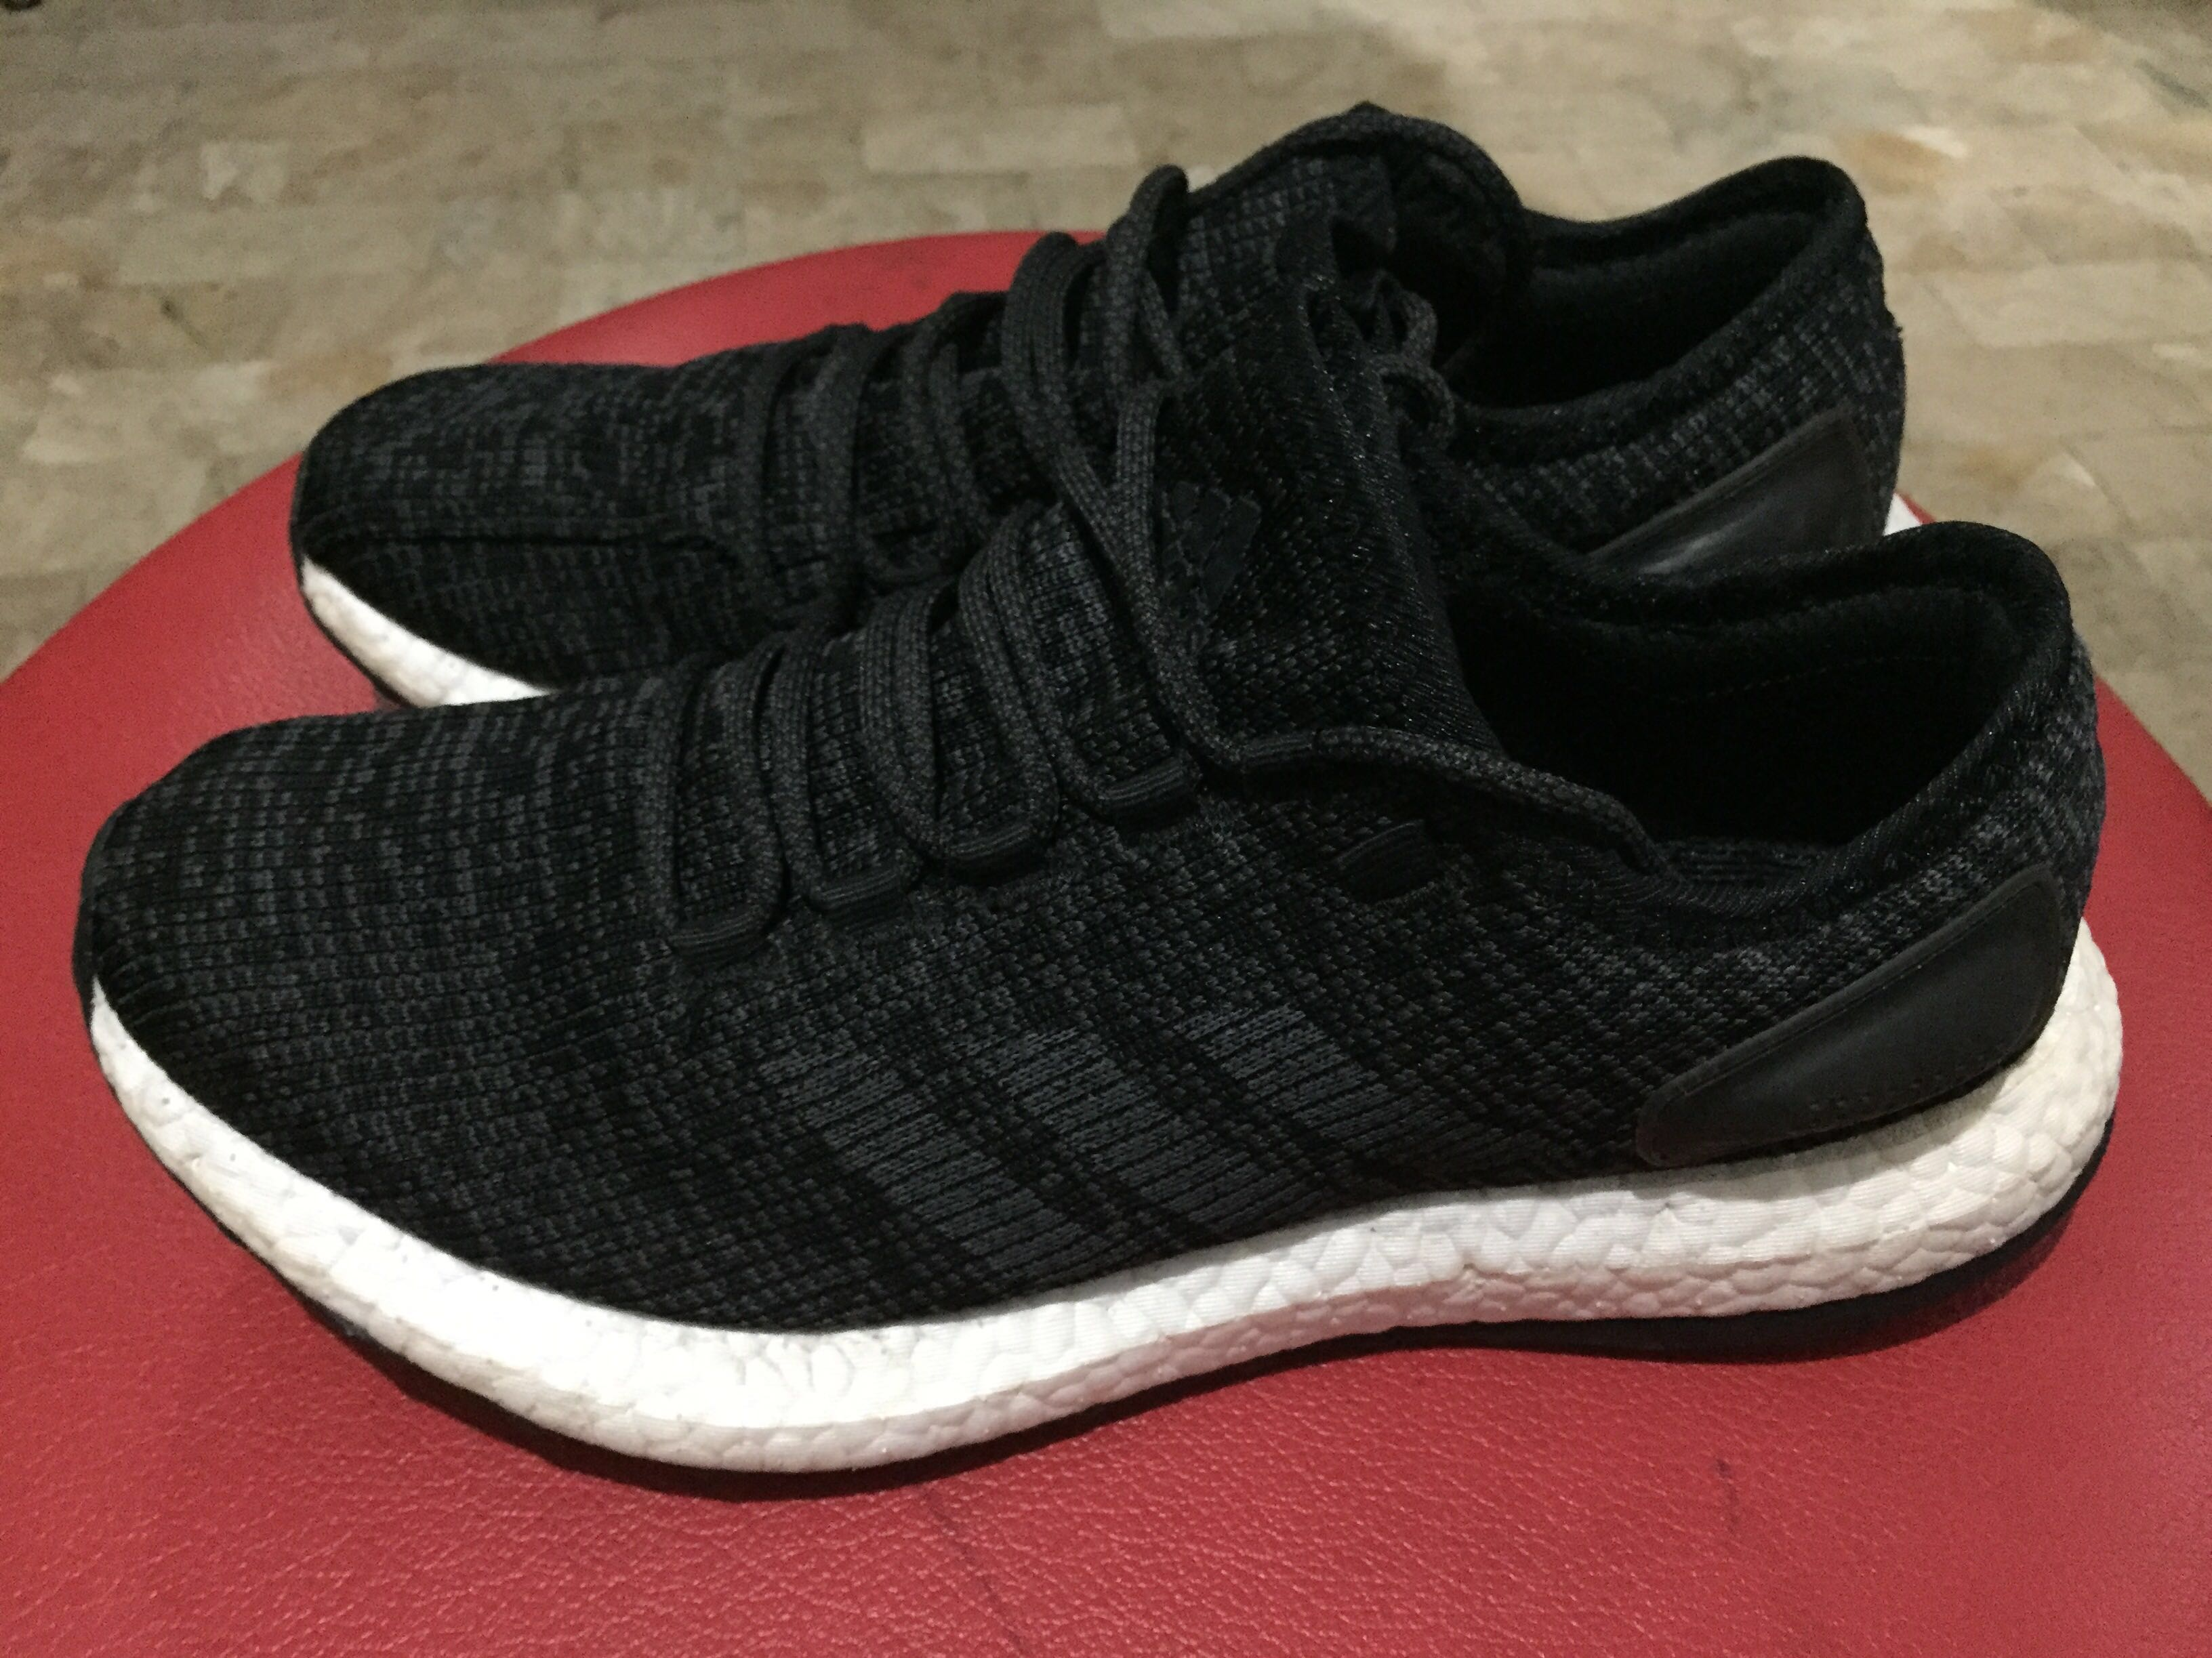 0cd50a0312 Adidas Pureboost Clima, Men's Fashion, Footwear, Sneakers on Carousell